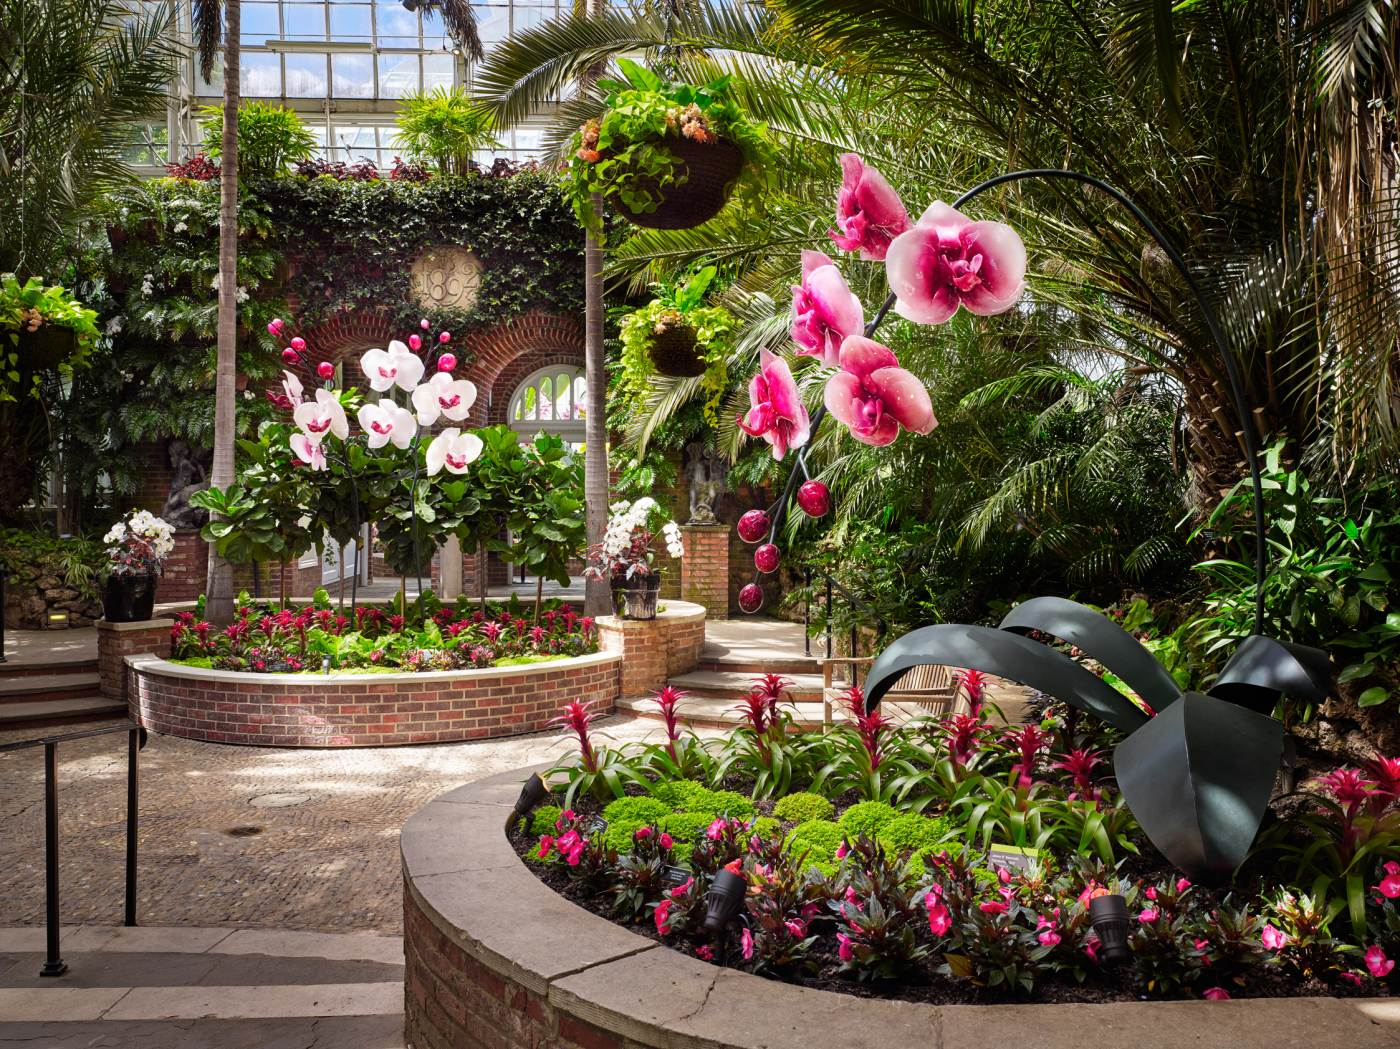 Sculpted glass orchids by artist Jason Gamrath are seen in Phipps' Palm Court. Photo copyright Ed Massery.